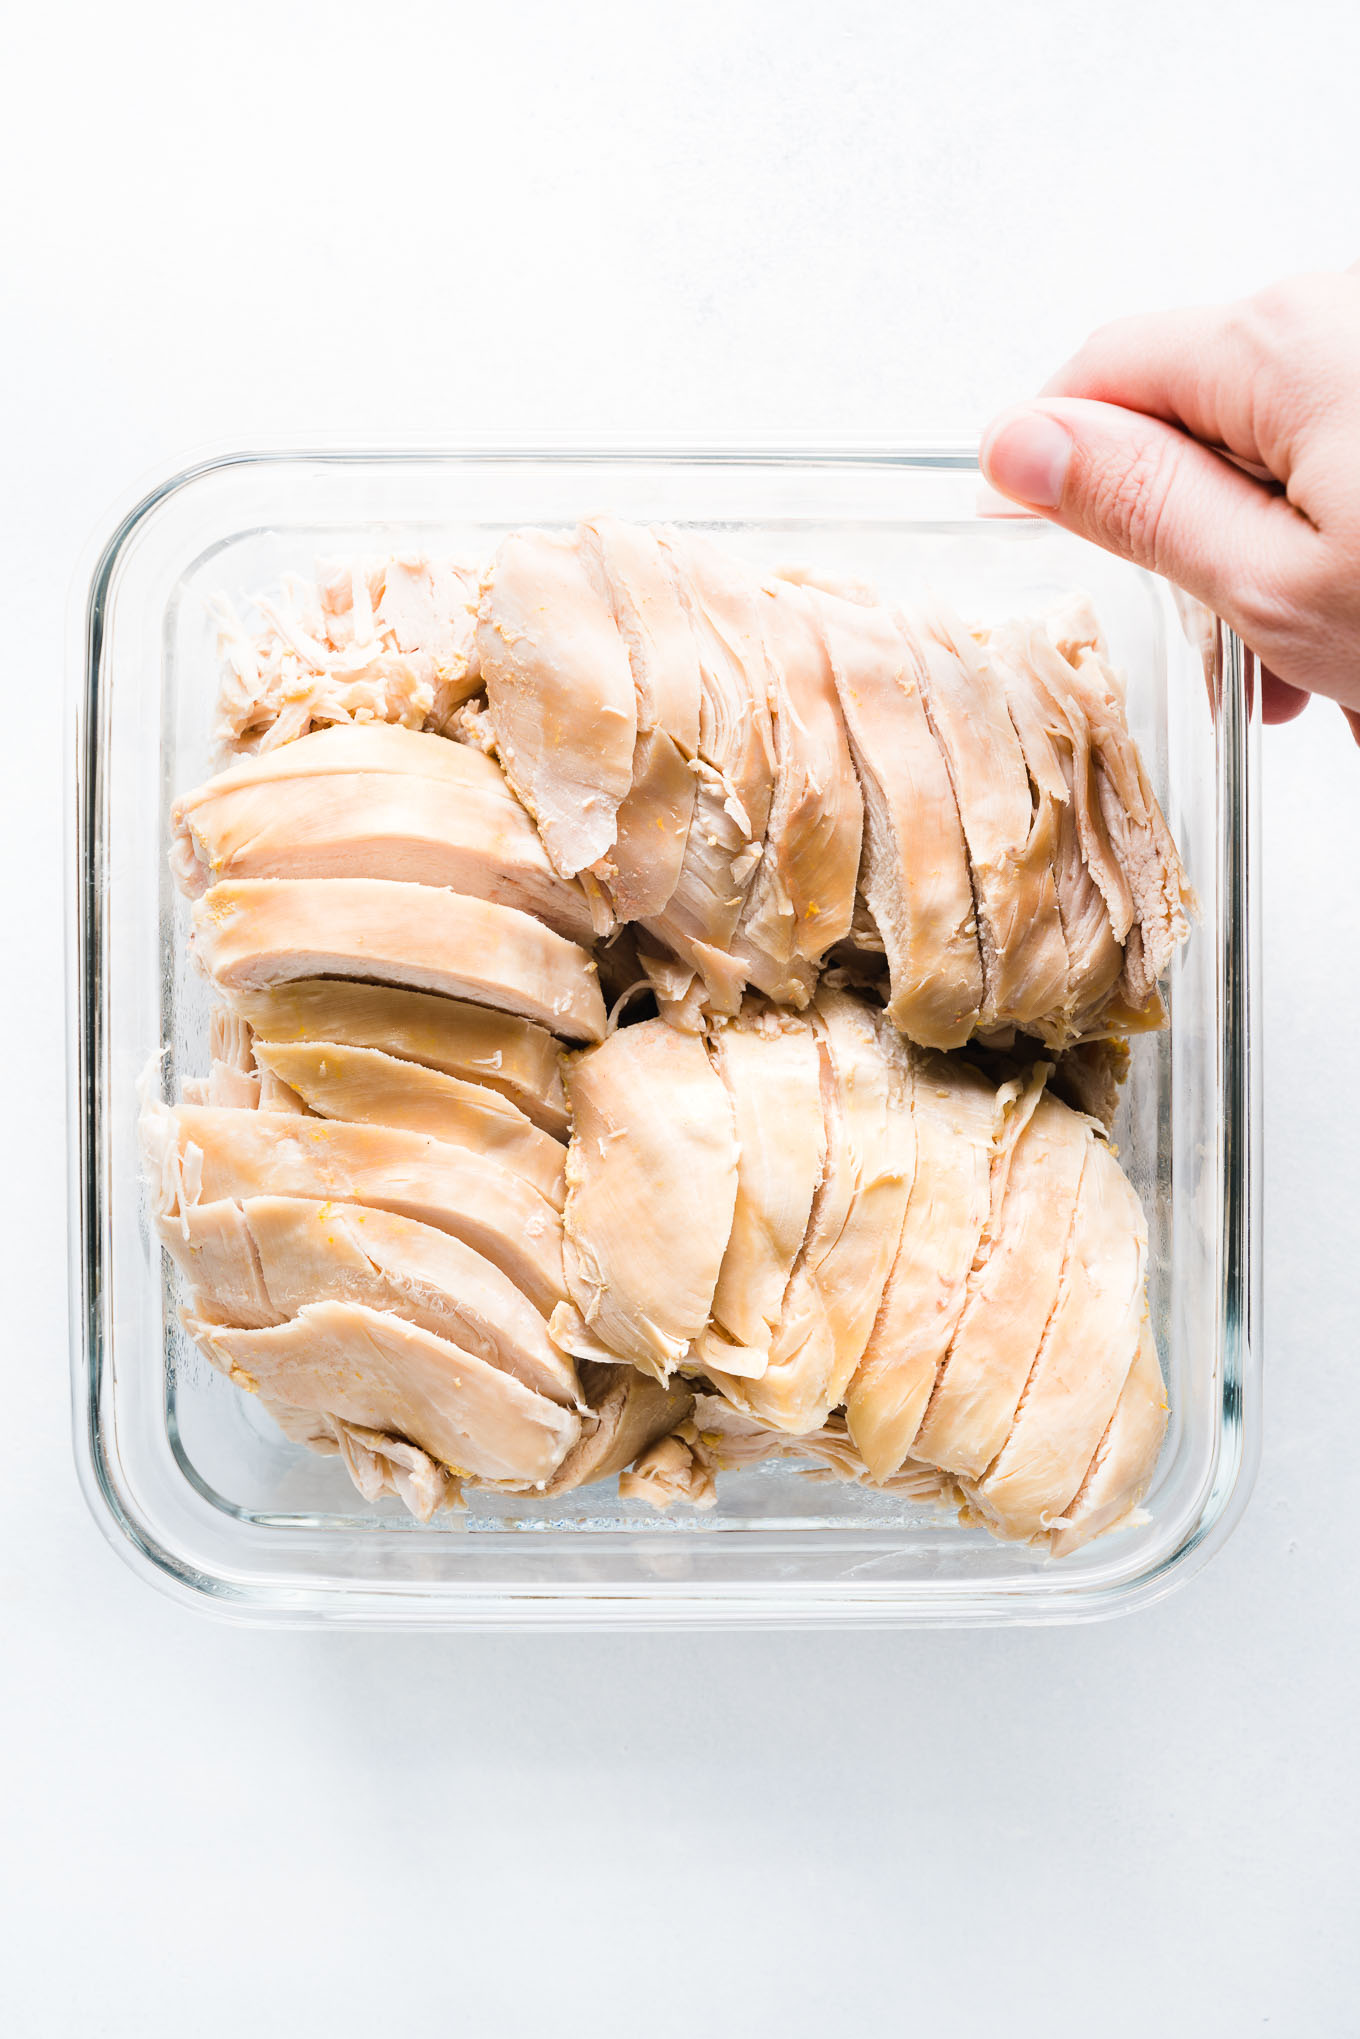 Sliced chicken breast in glass square container